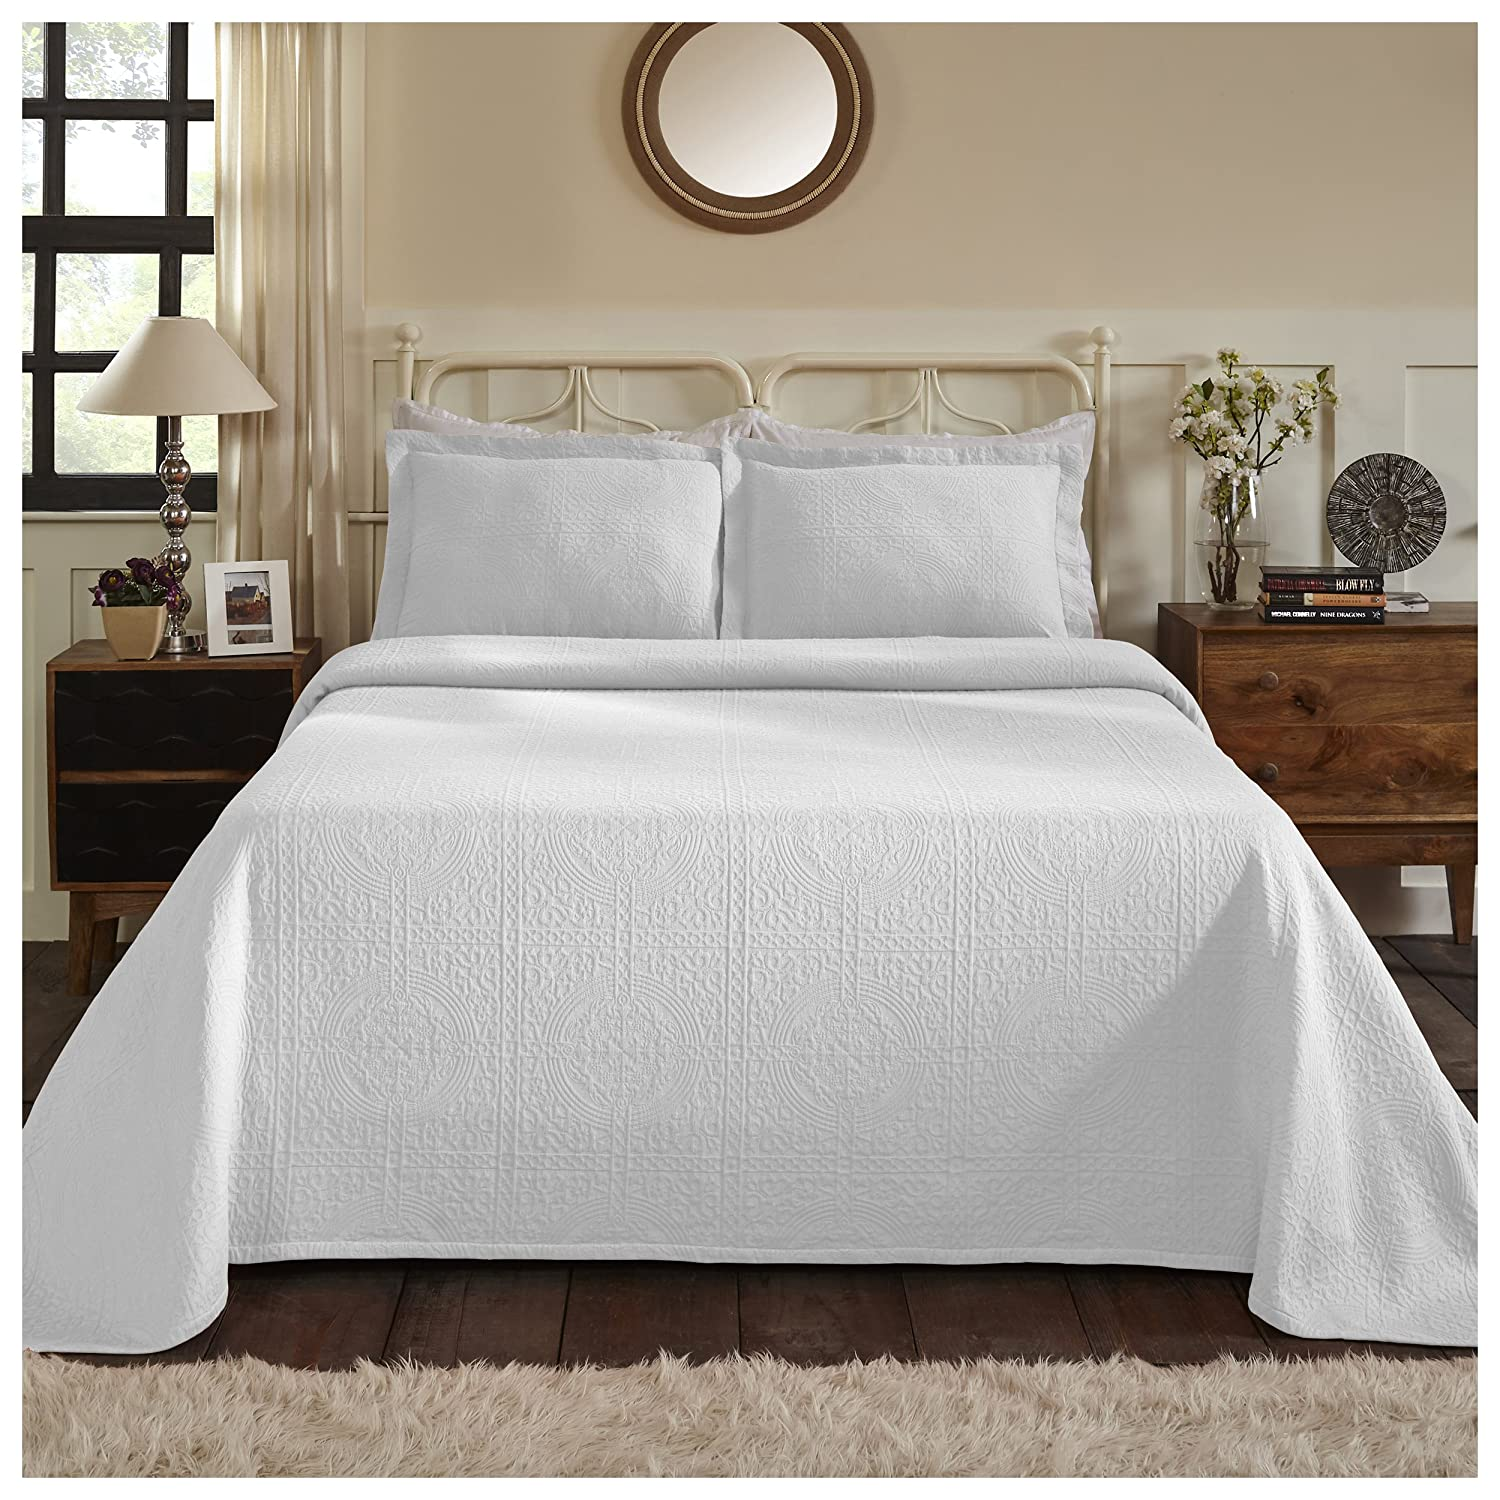 White Full Superior 100% Cotton Medallion Bedspread with Shams, All-Season Premium Cotton Matelassé Jacquard Bedding, Quilted-look Floral Medallion Pattern - Queen, White